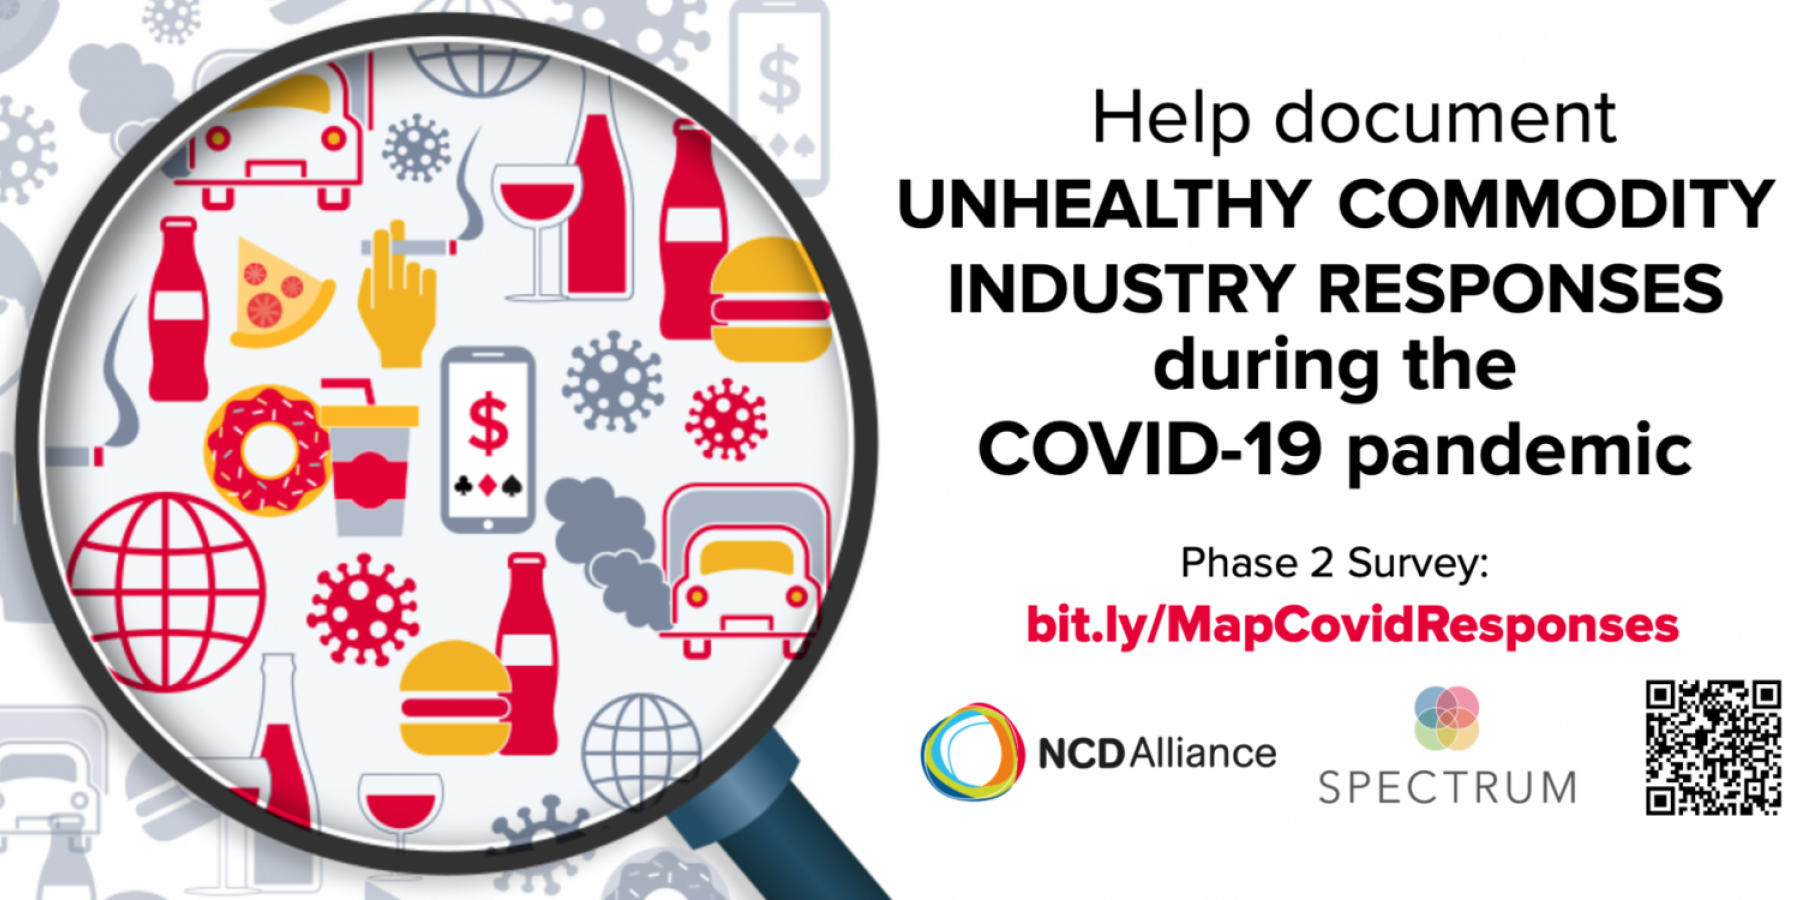 Unhealthy commodity industry responses during COVID